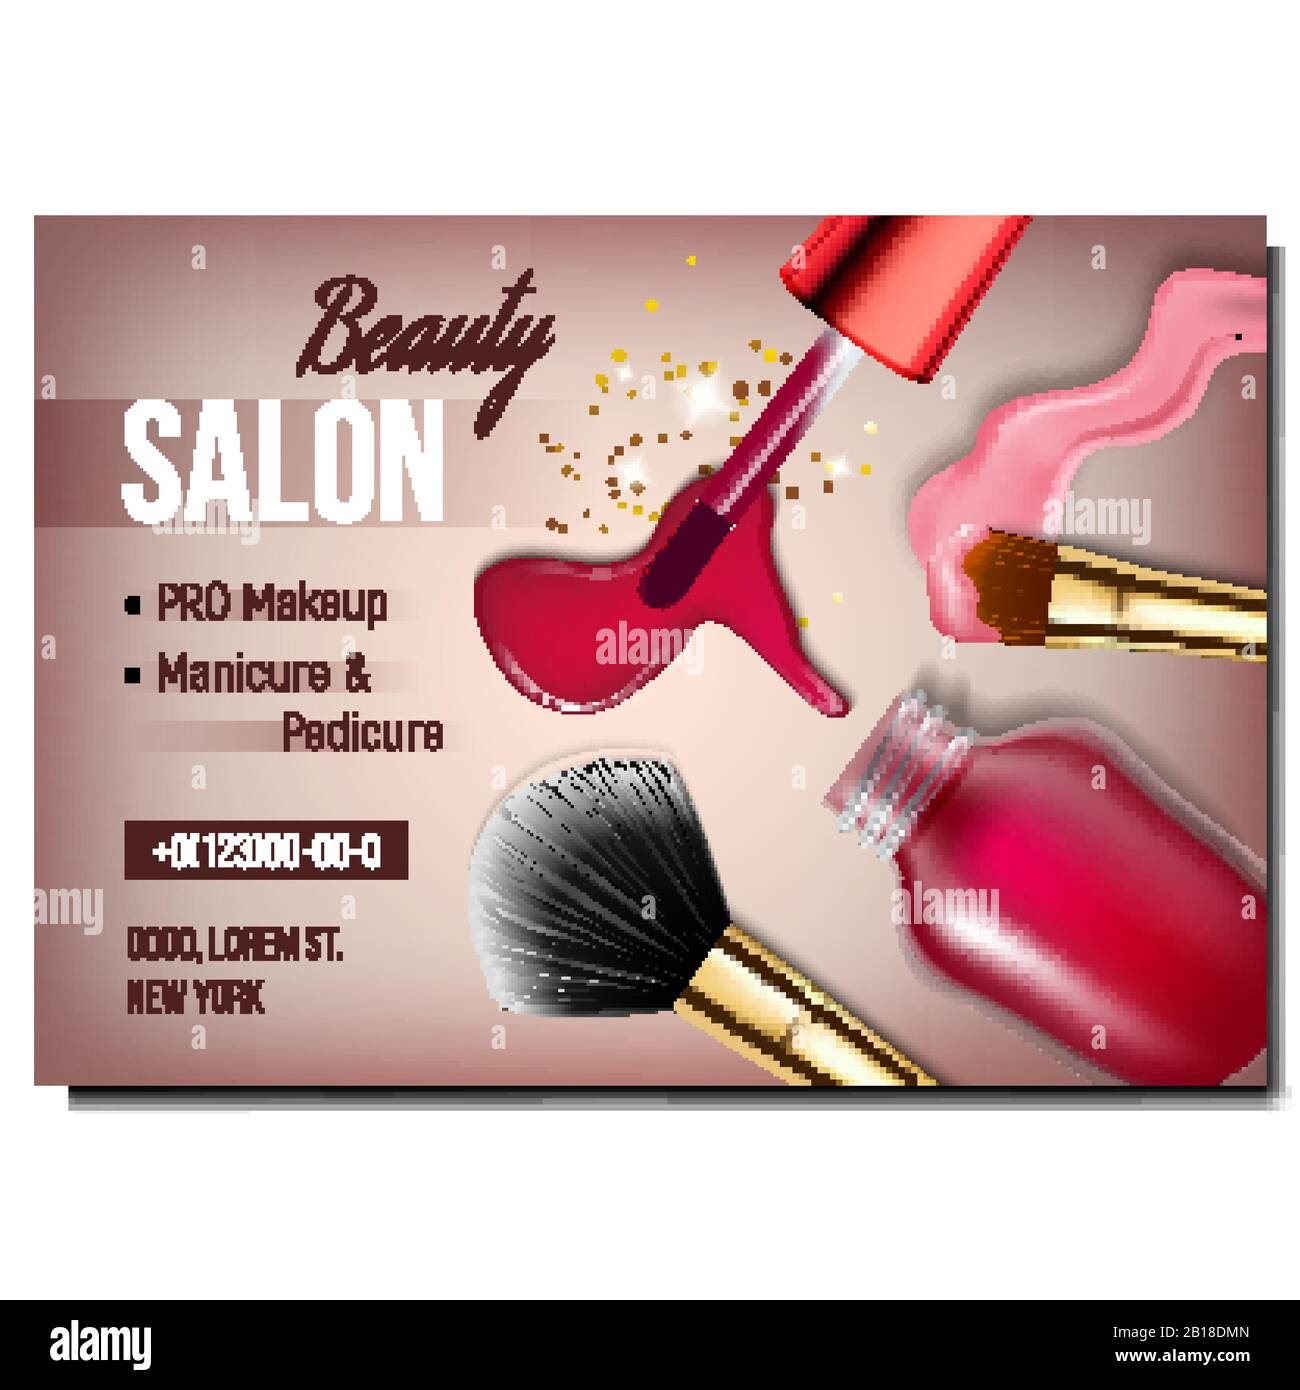 Beauty Salon Cosmetology Advertising Poster Vector Stock Vector Image Art Alamy